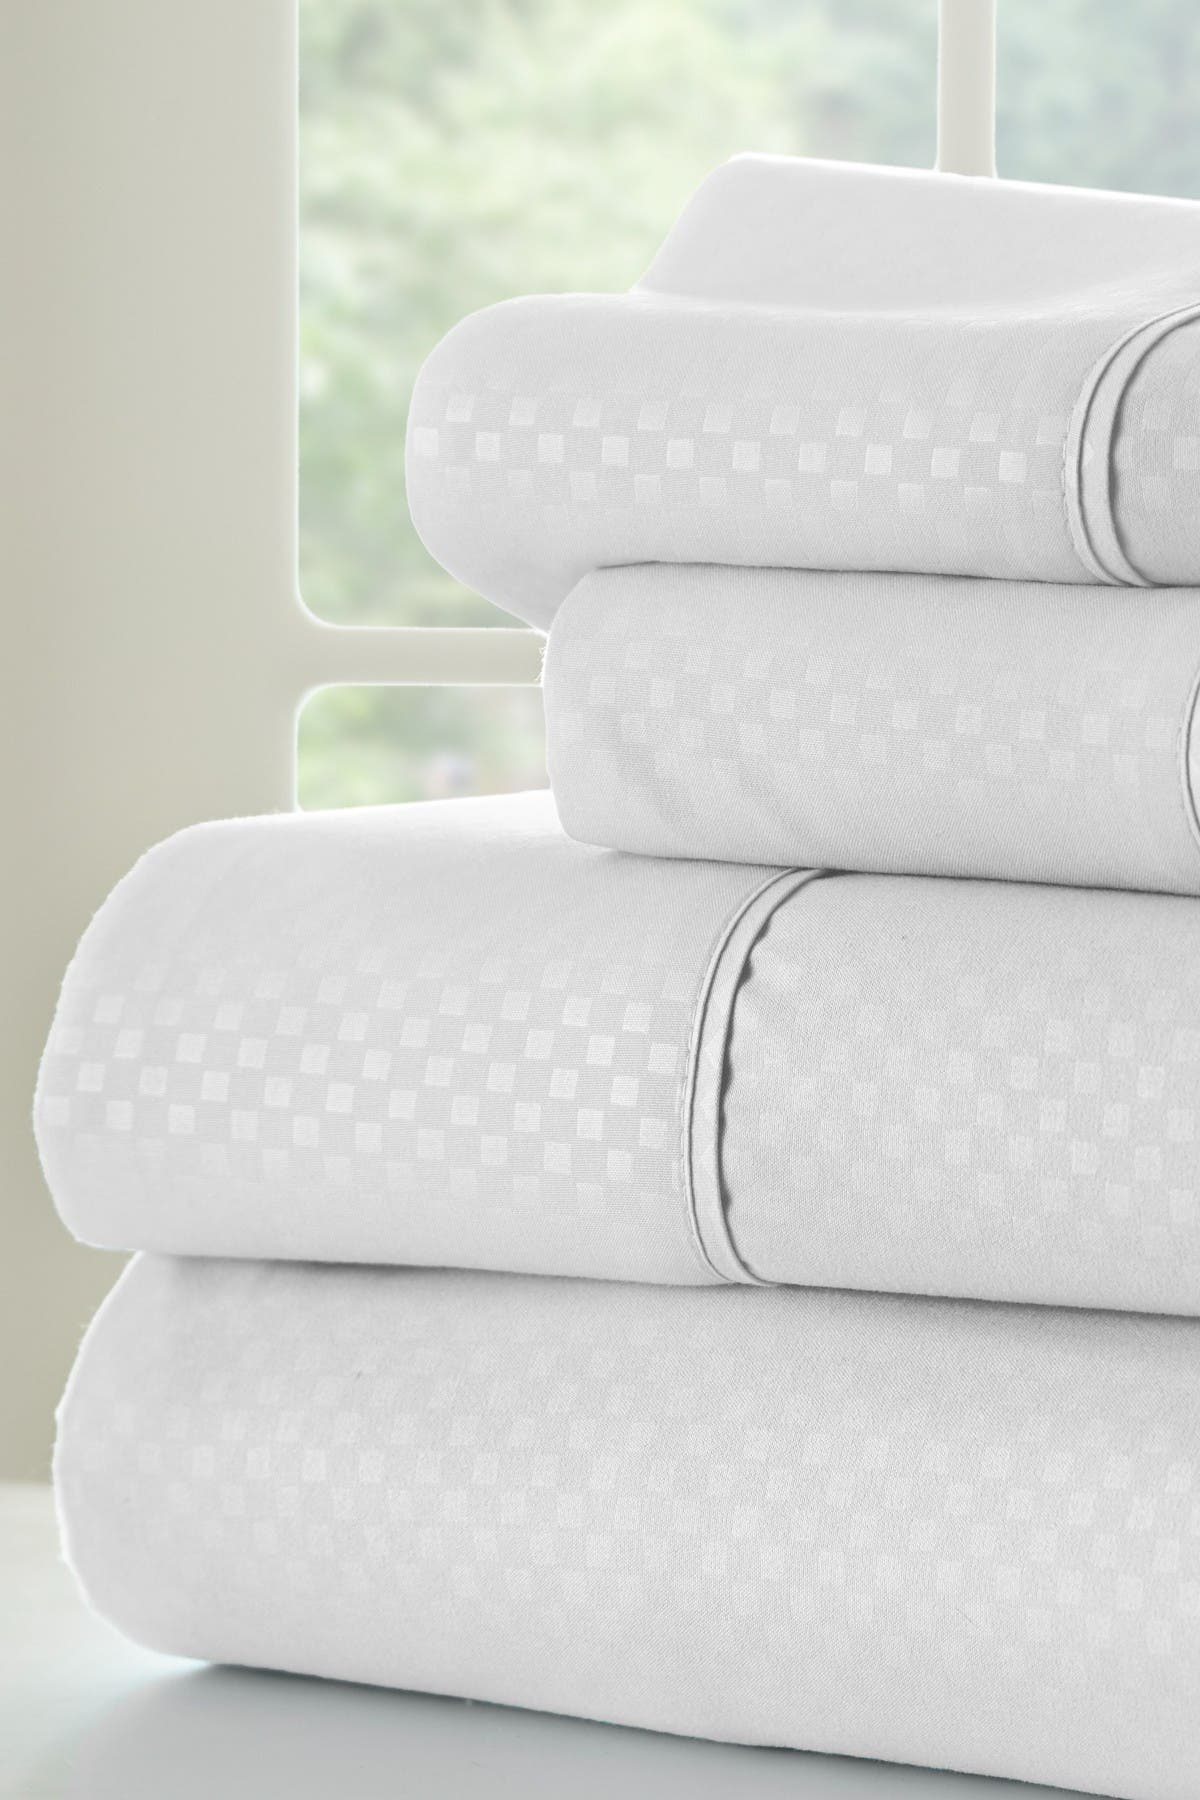 Image of IENJOY HOME King Hotel Collection Premium Ultra Soft 4-Piece Checkered Bed Sheet Set - White